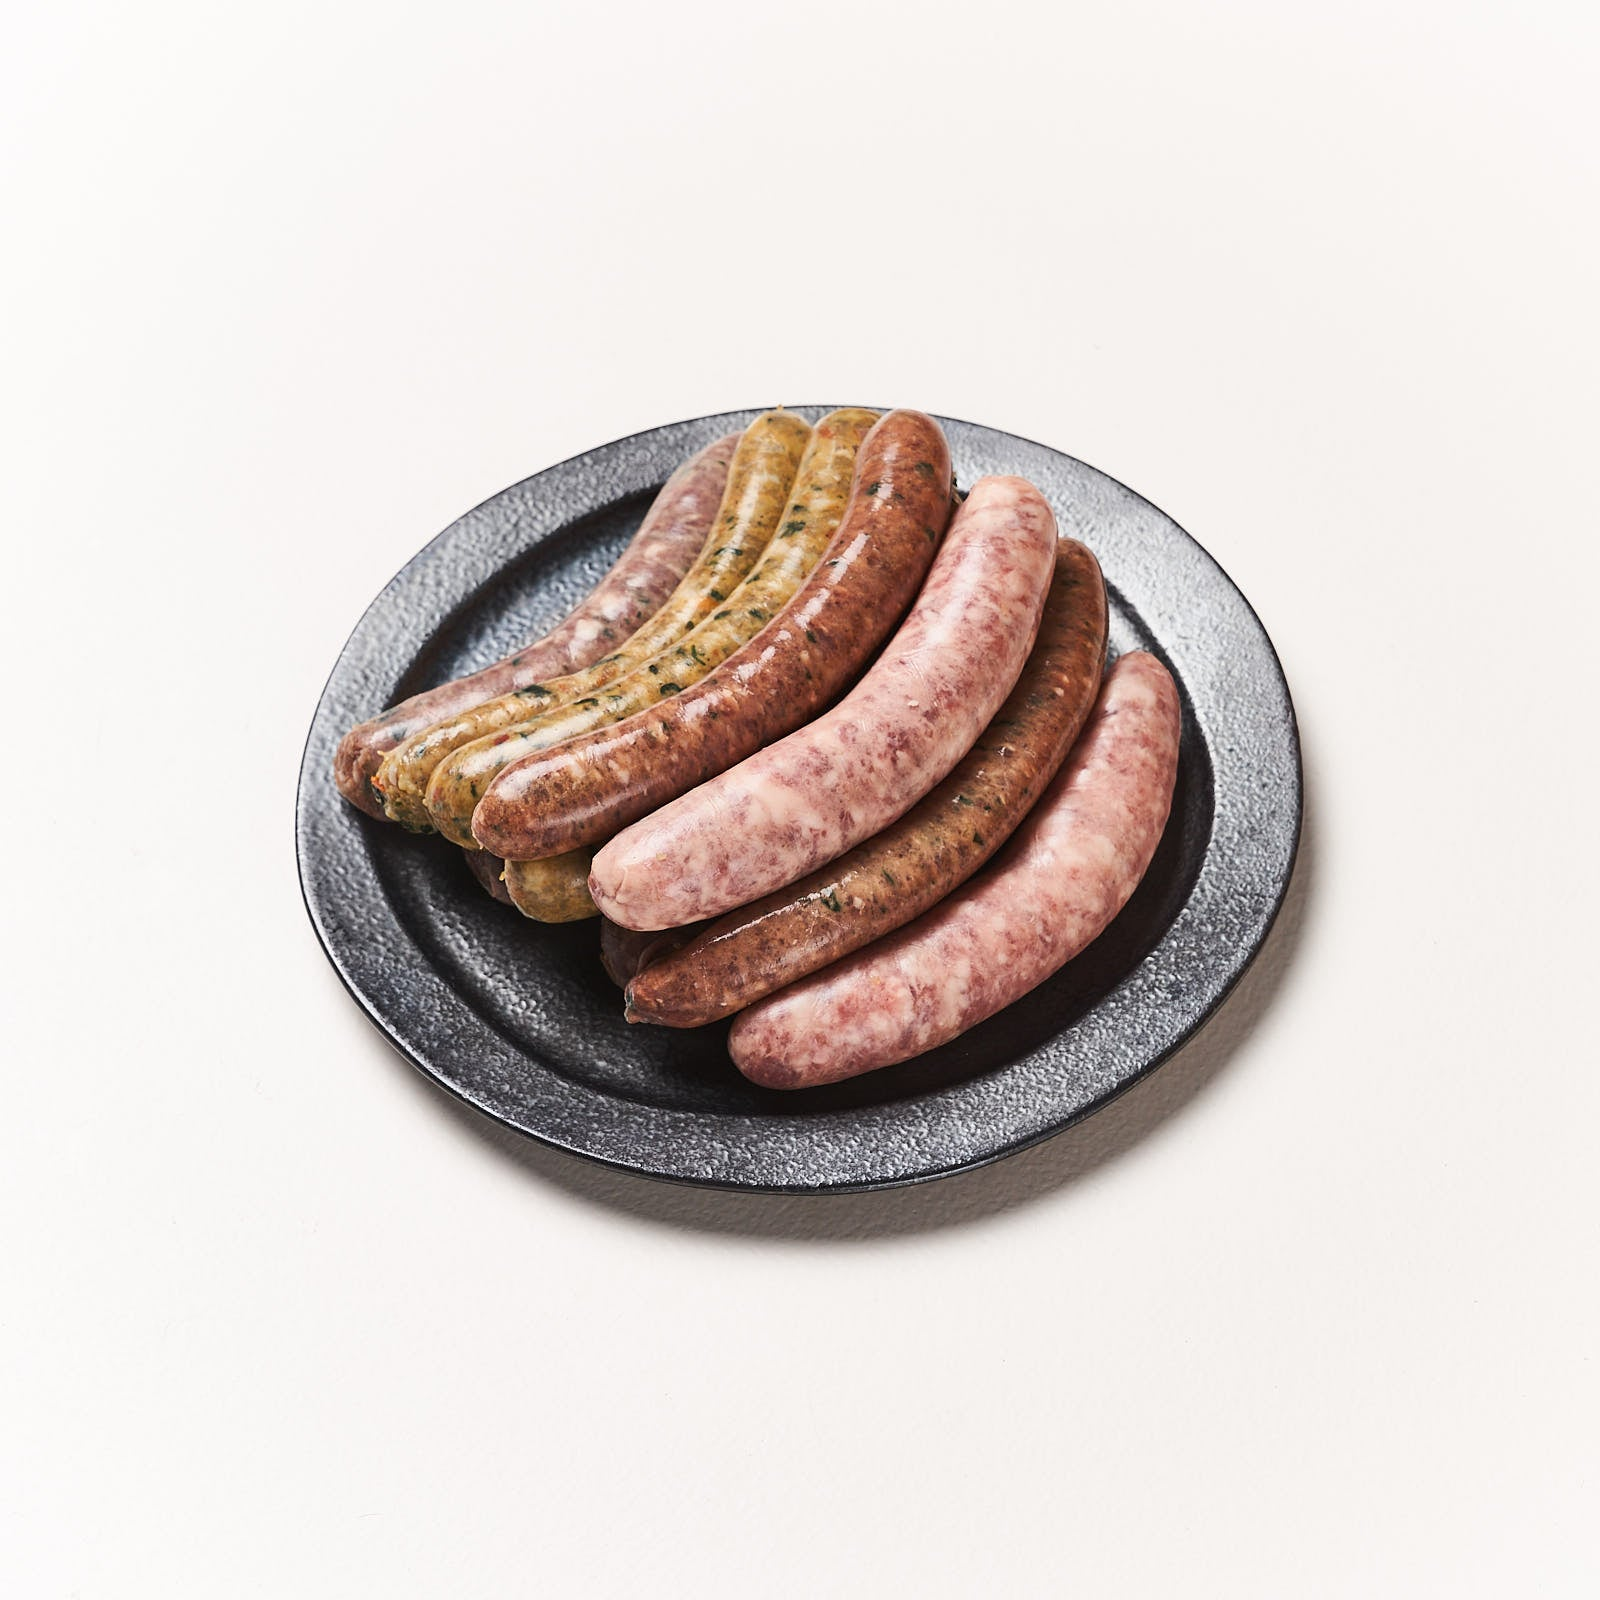 House-Made Mixed Sausages